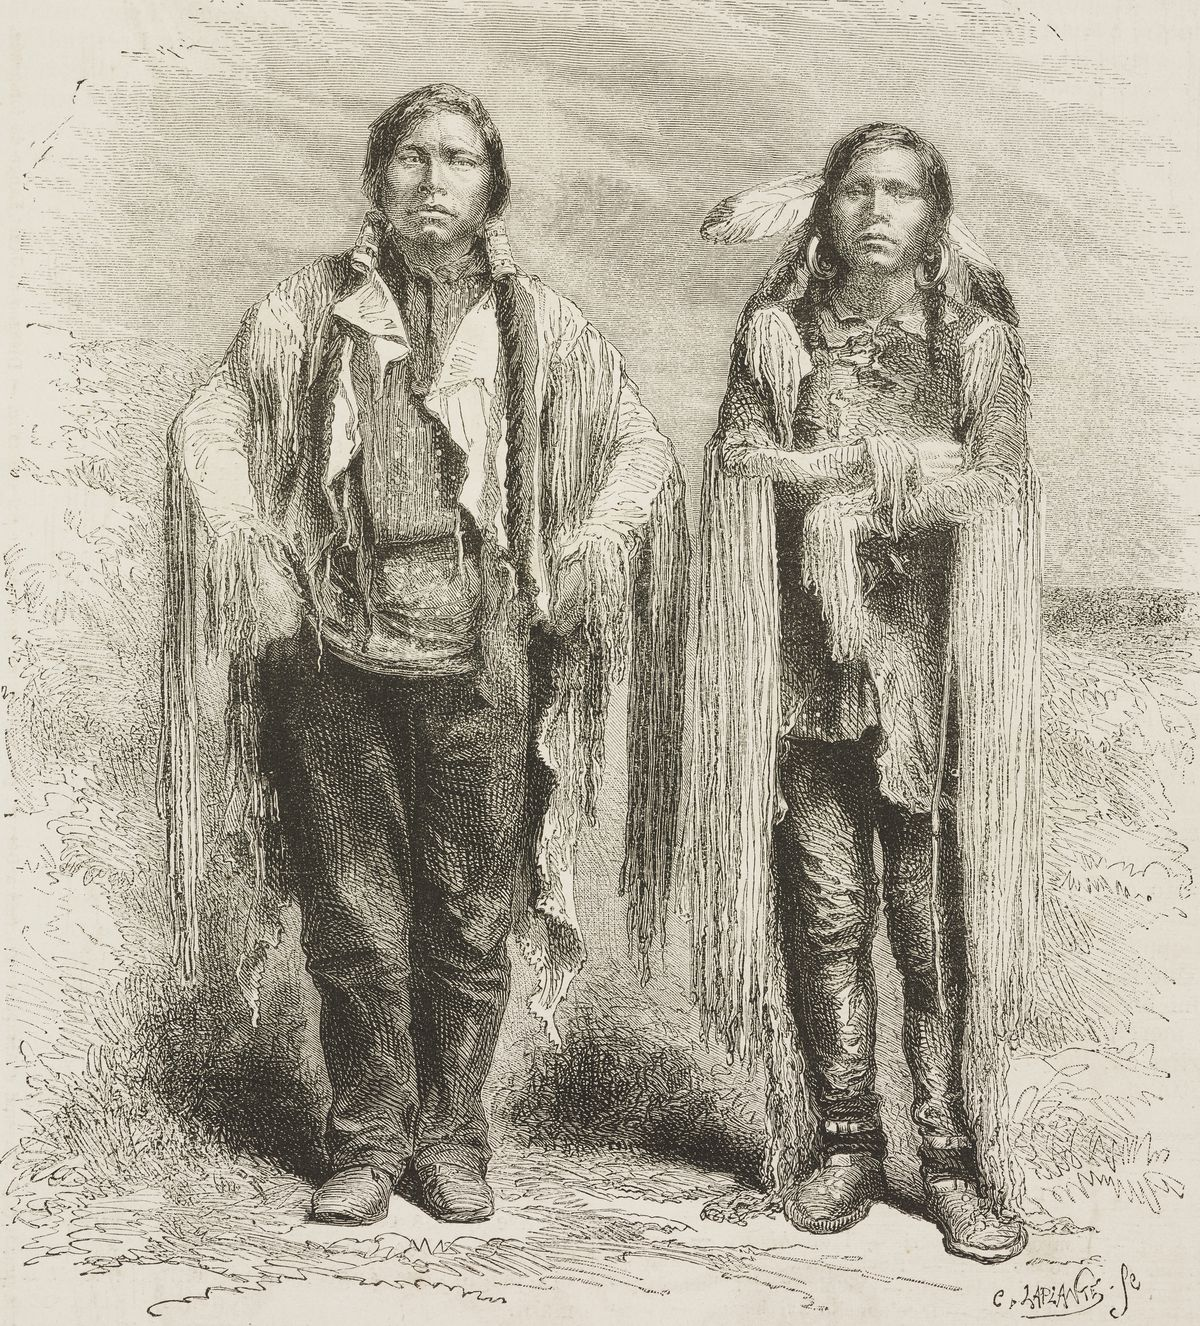 Yule and Quincy, Ute chiefs, drawing, Janet Lange